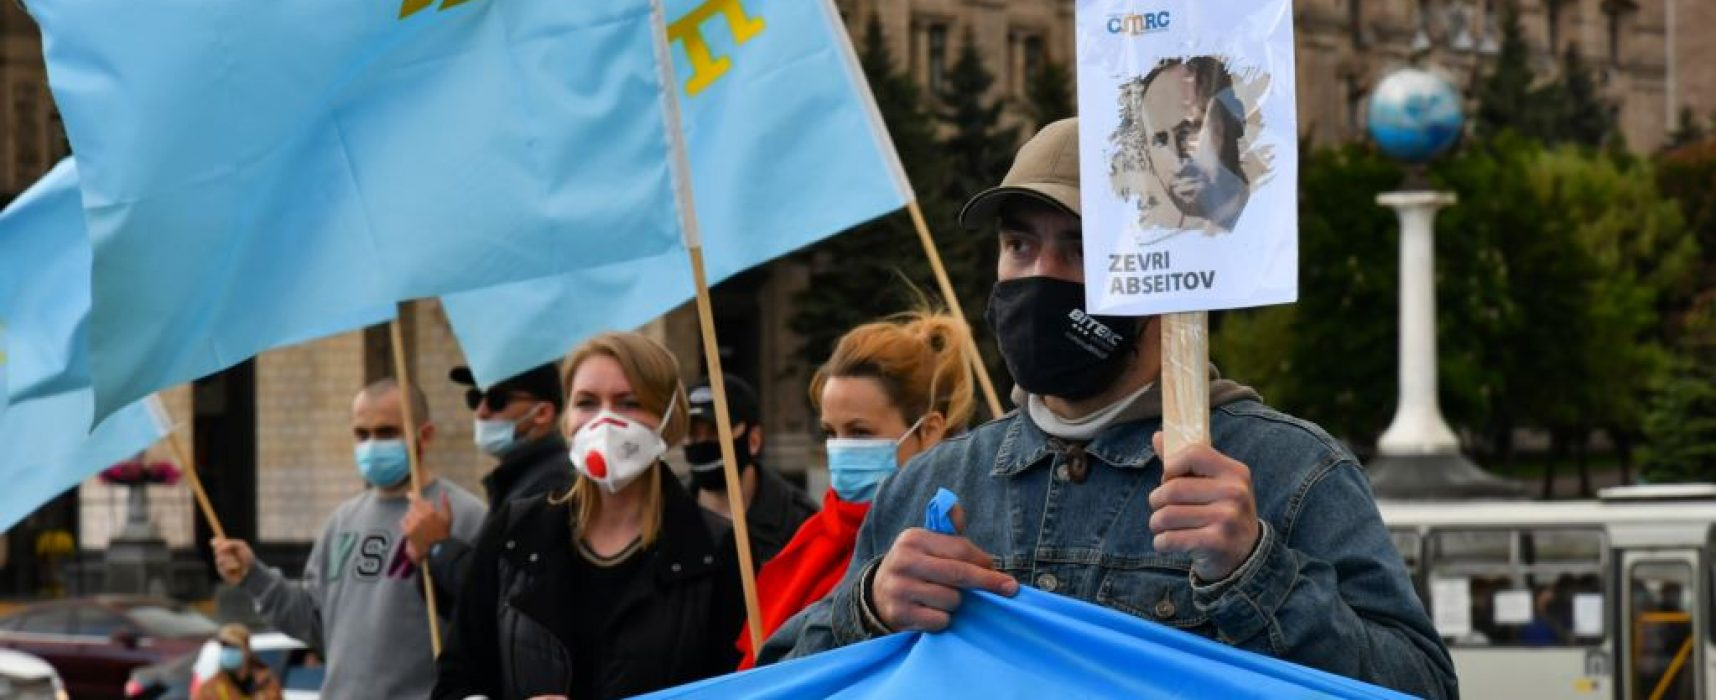 Russian 'expert' denies documented repression of Crimean Tatars